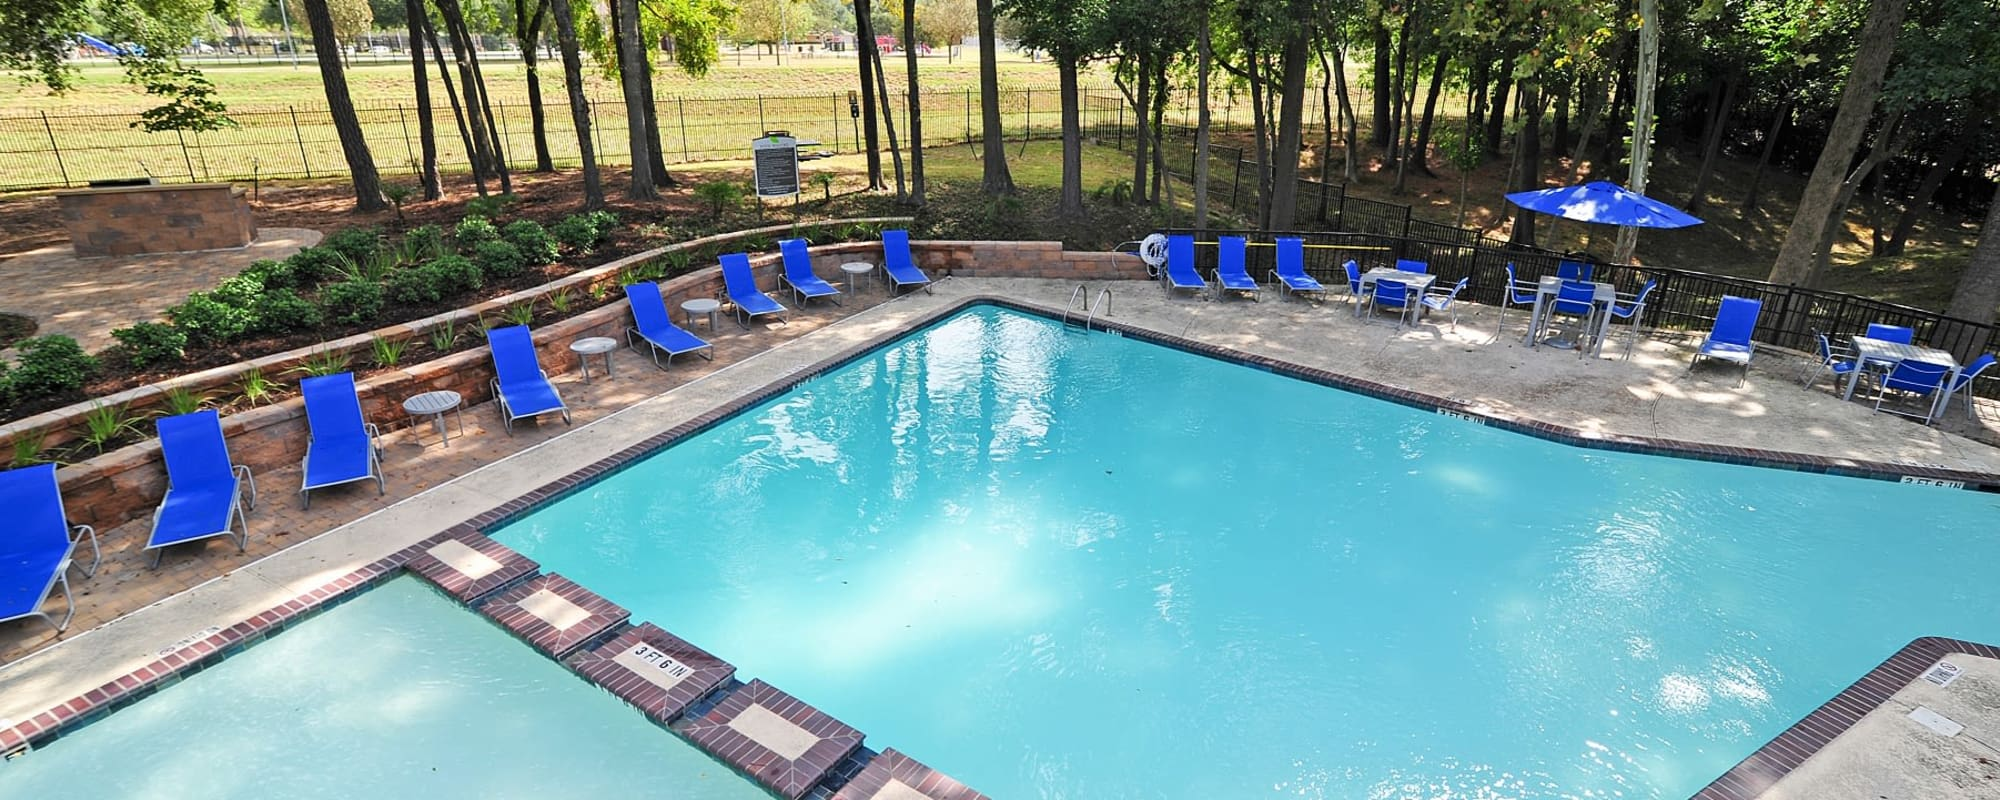 Beautiful swimming pool and chairs at Bayou Parc at Oak Forest in Houston, Texas